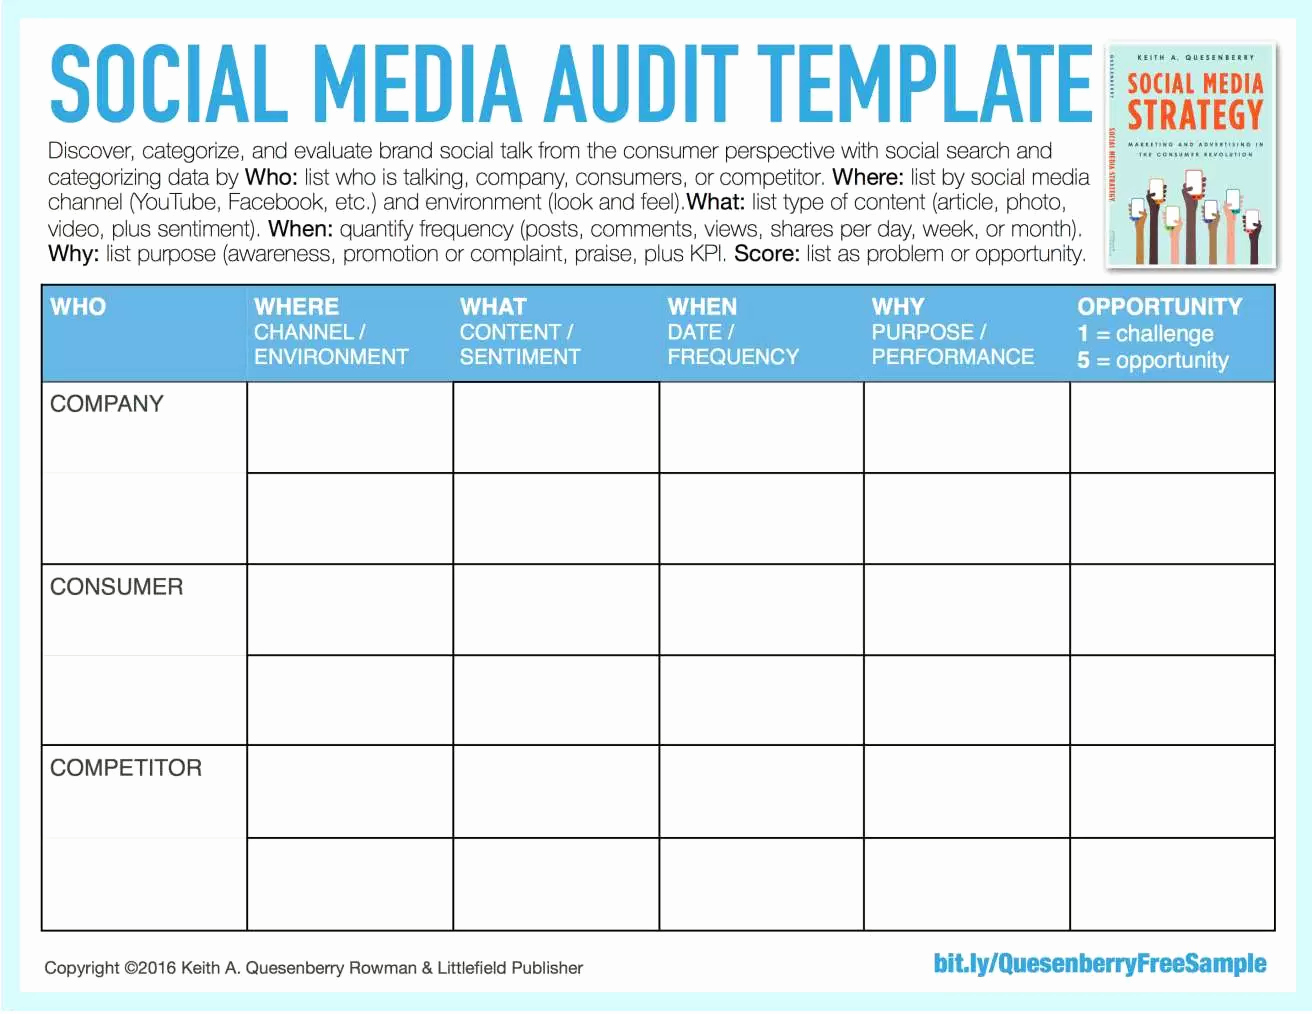 Social Media Strategy Template Pdf Best Of the 11 Step Dead Simple social Media Marketing Plan